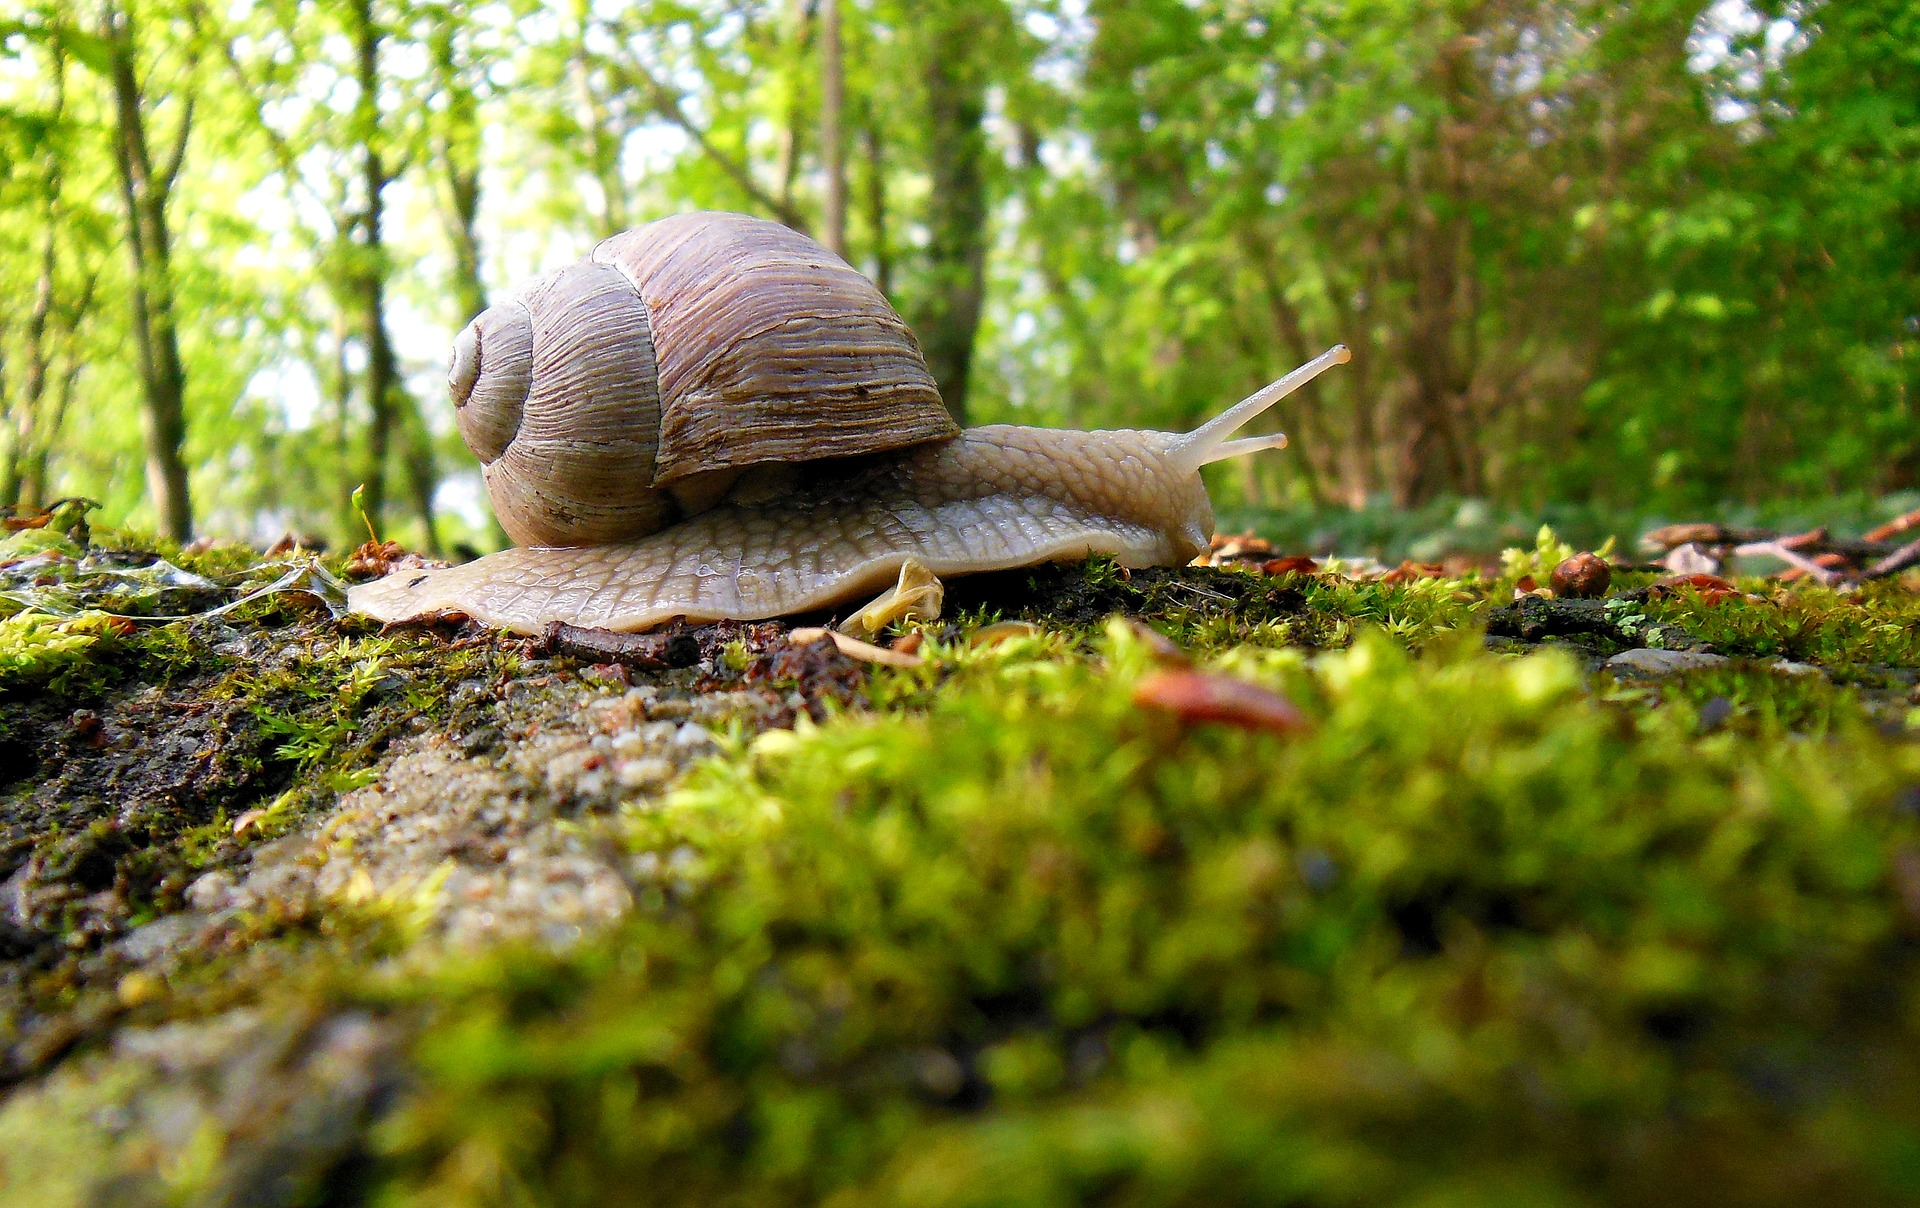 macro photo of snail moving across forest floor